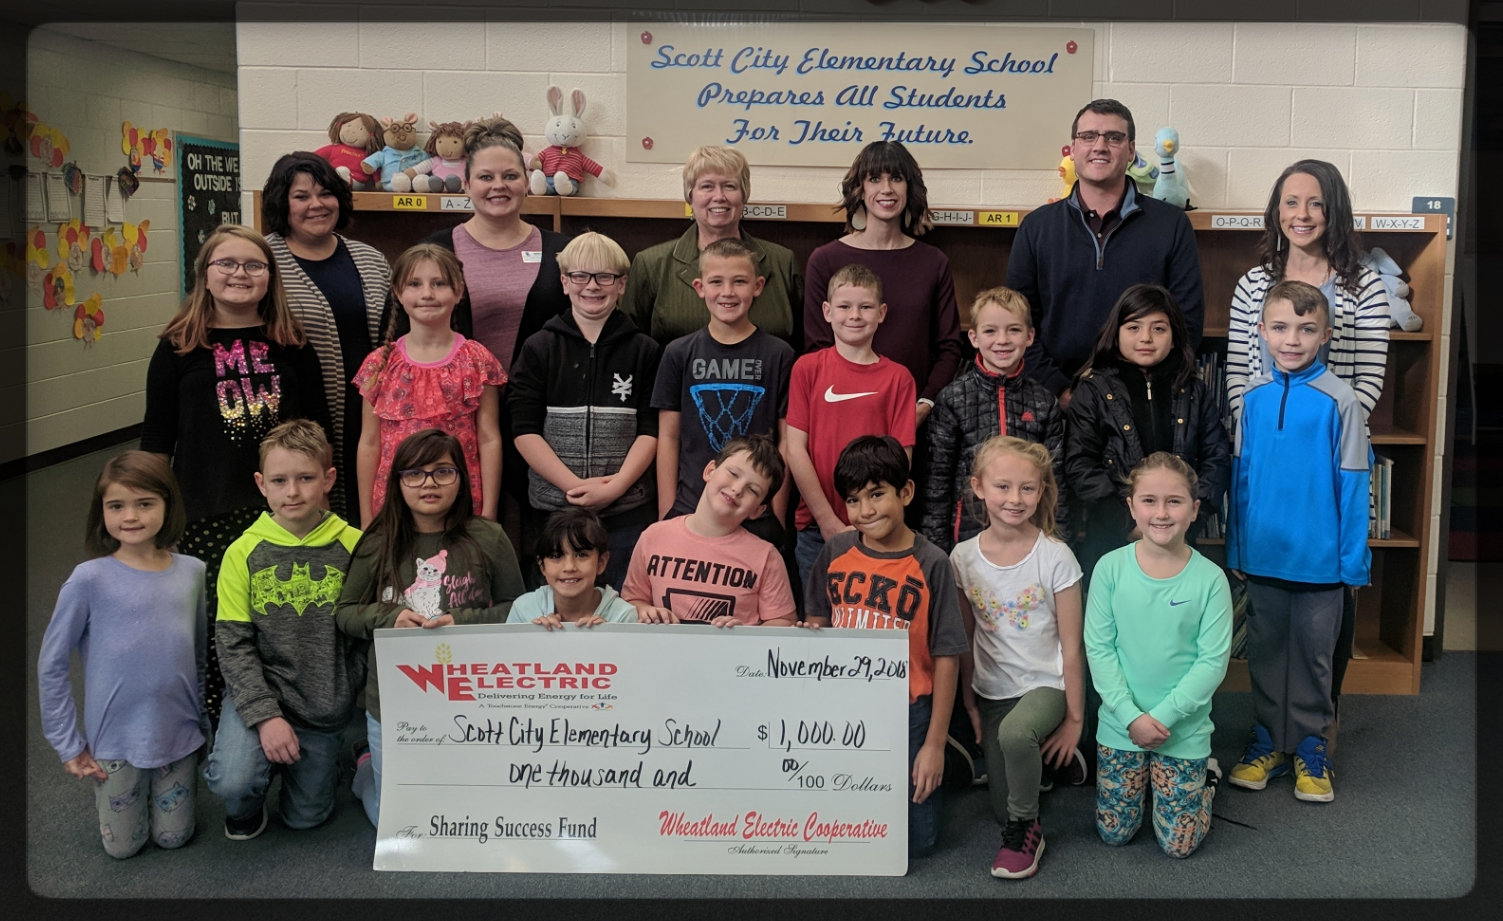 Scott City Elementary School Sharing Success Grant Presentation